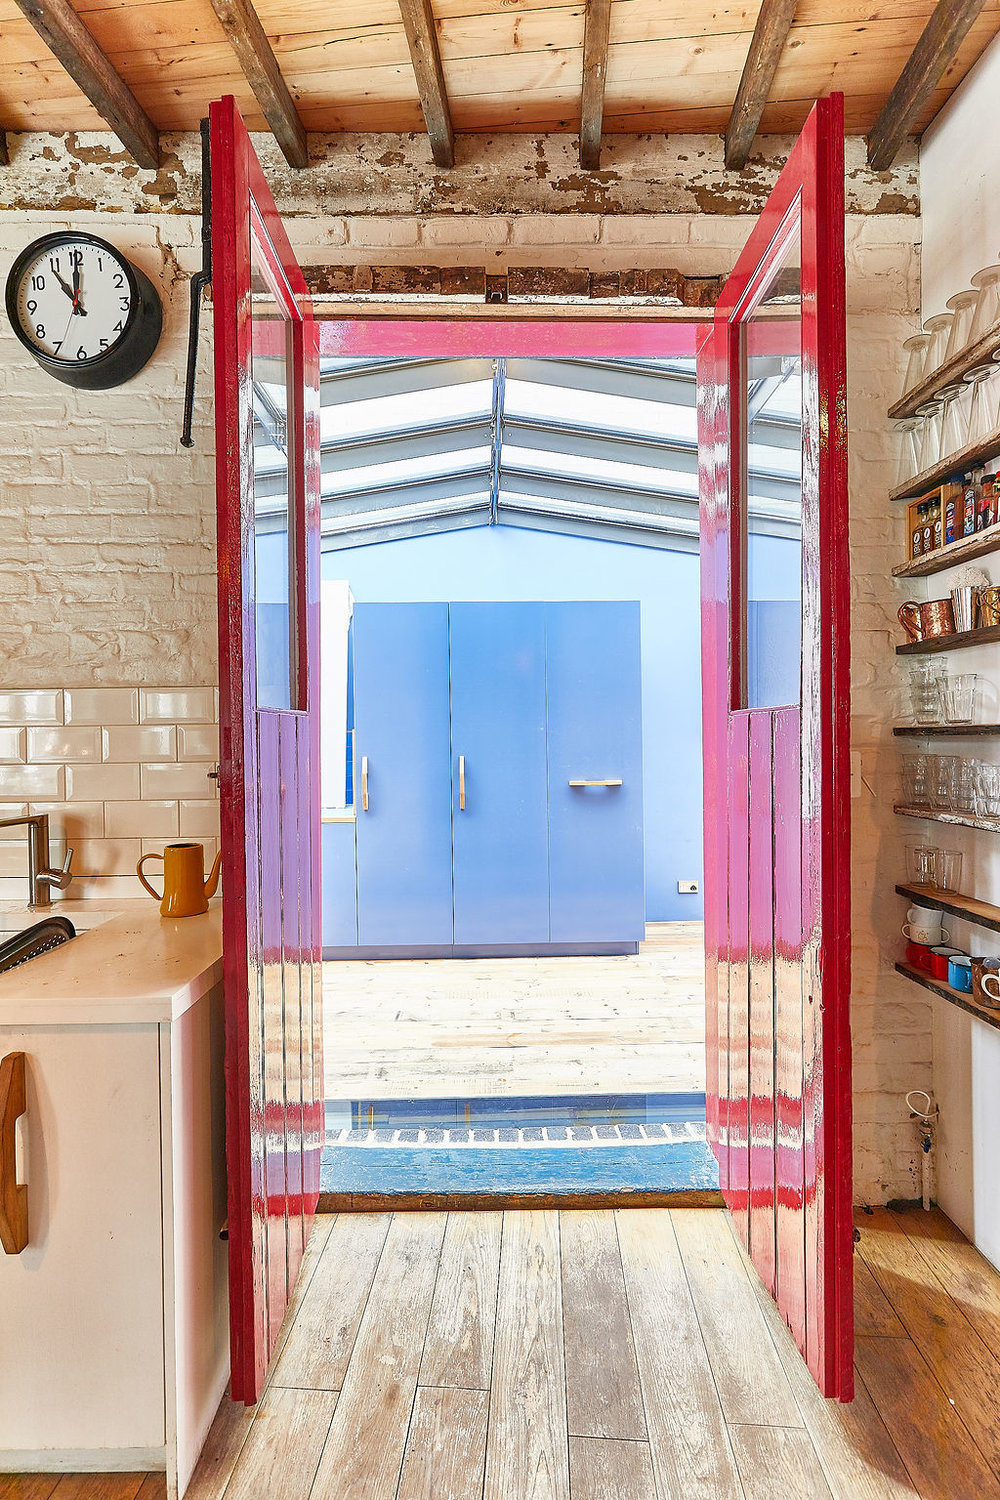 Entrance from the house's kitchen into the new extension